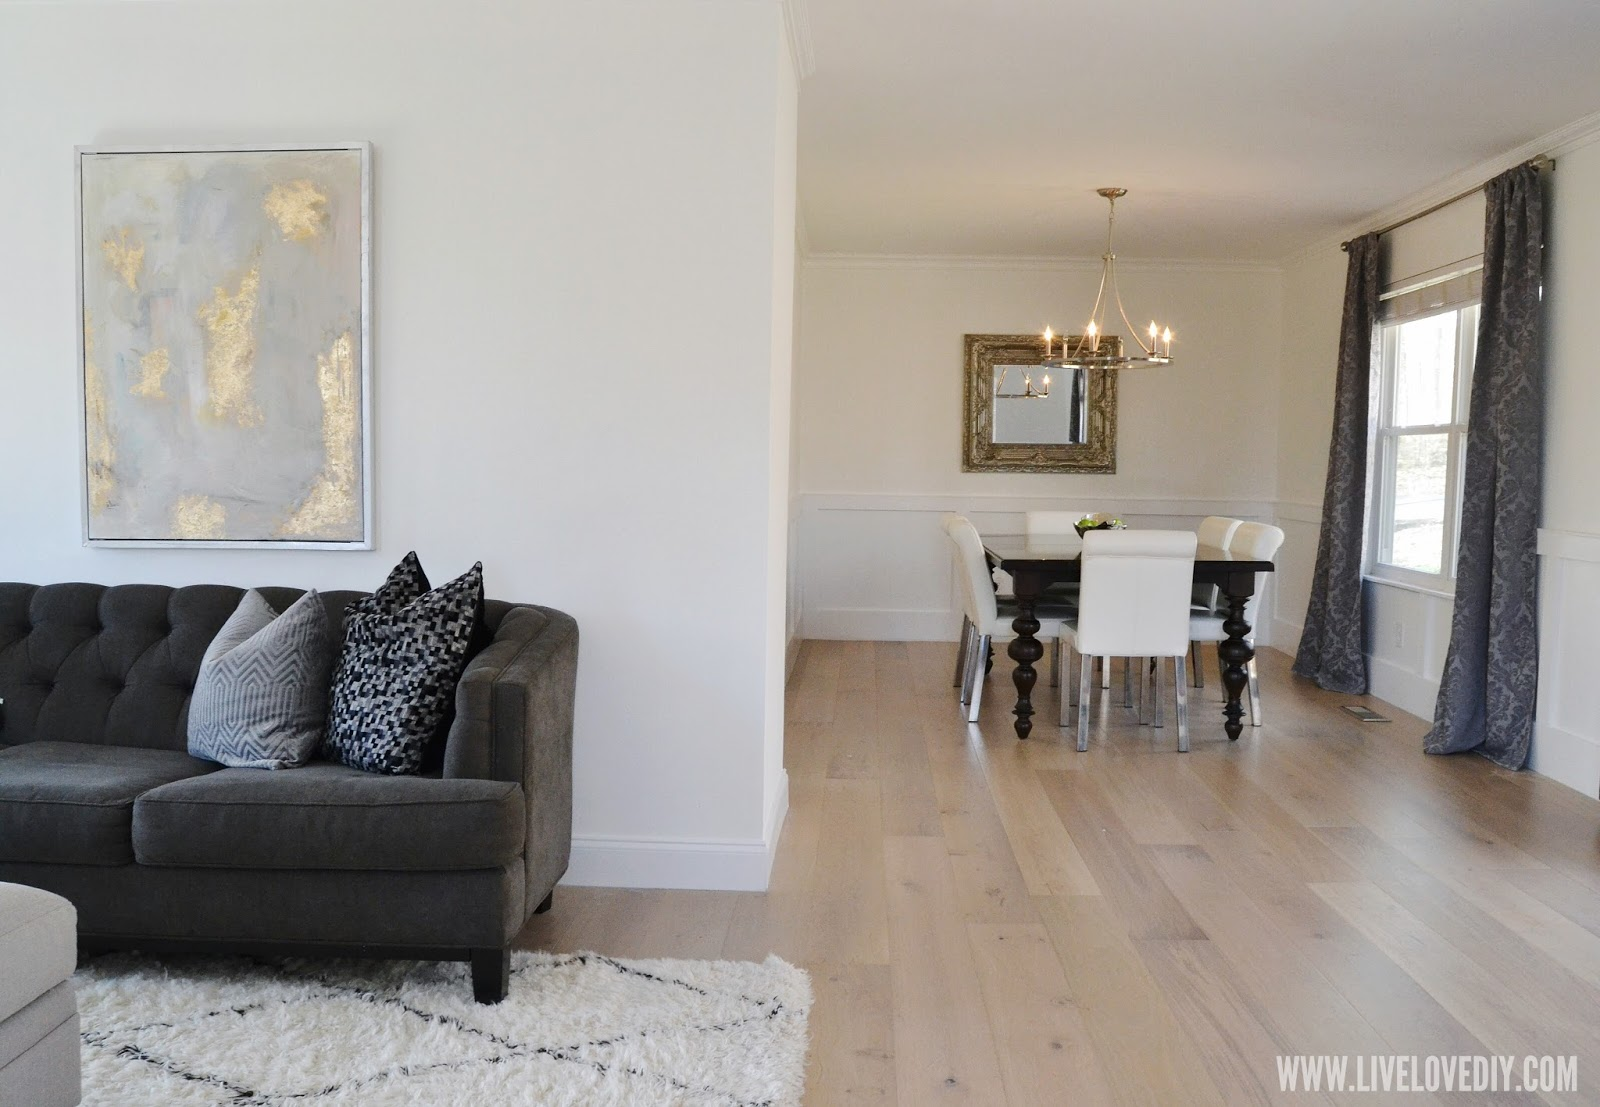 LiveLoveDIY: Our new hardwood flooring and a living room reveal!